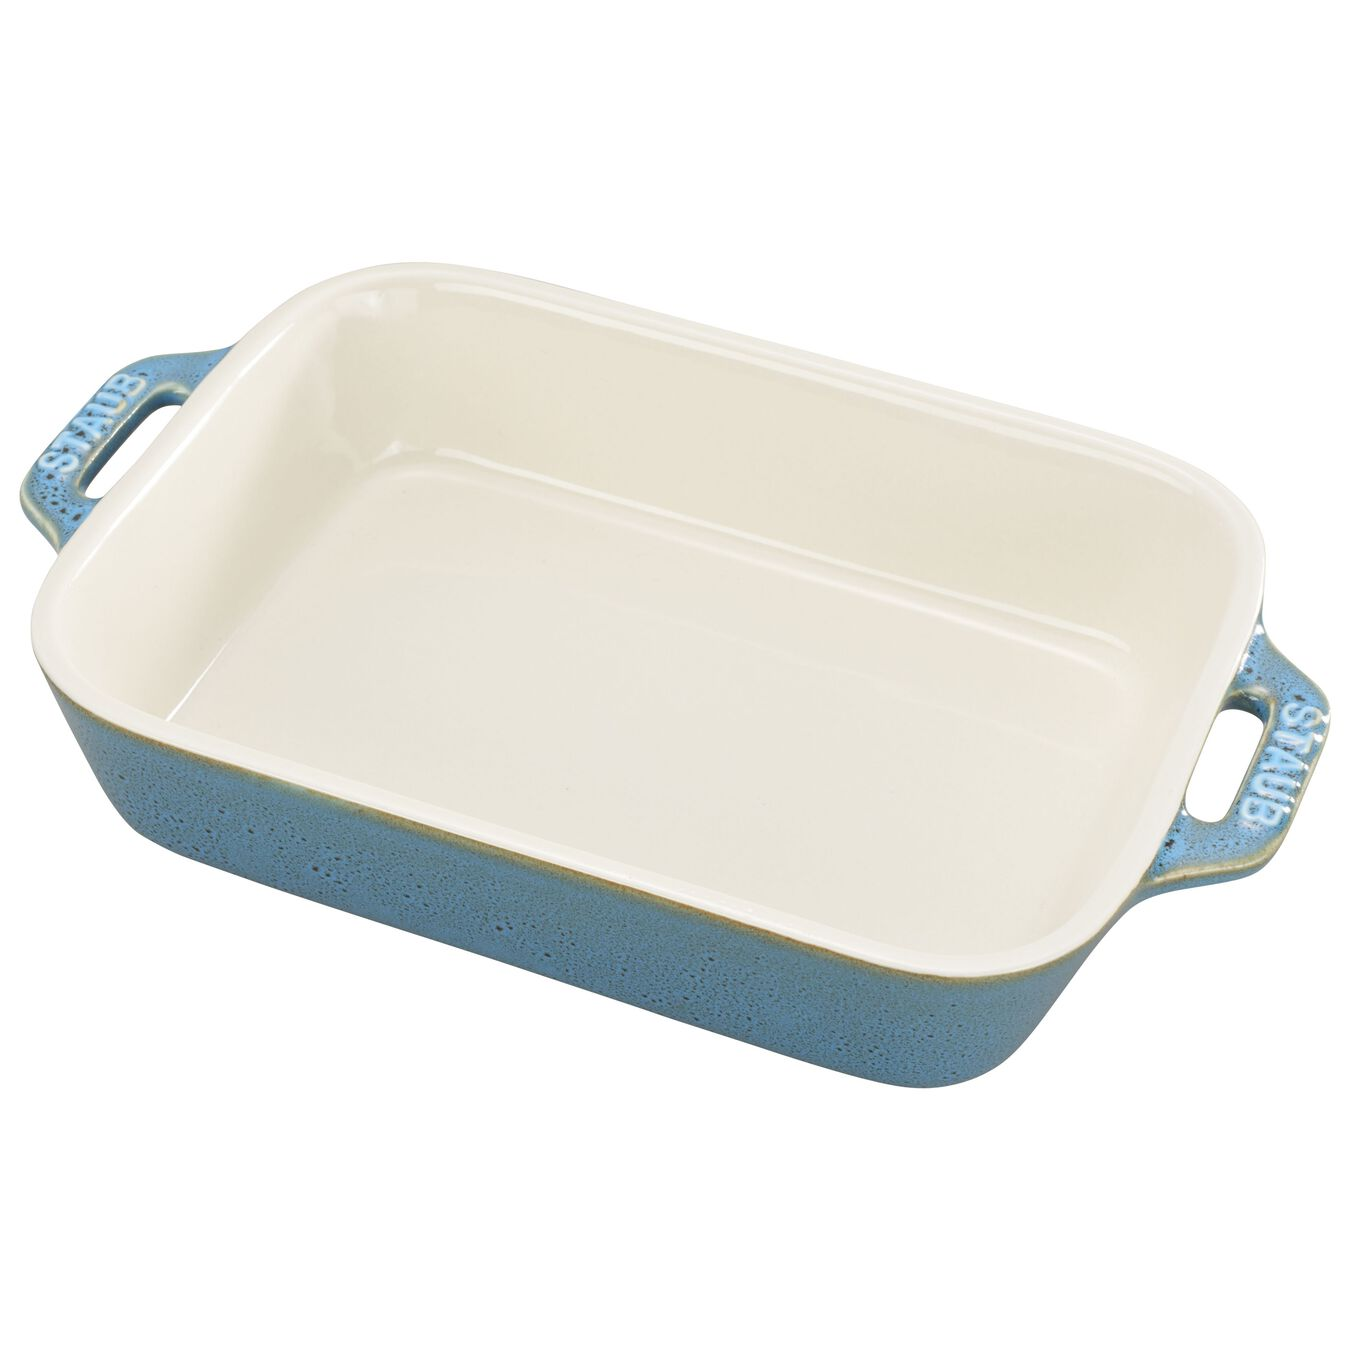 2-pc Rectangular Baking Dish Set - Rustic Turquoise,,large 2